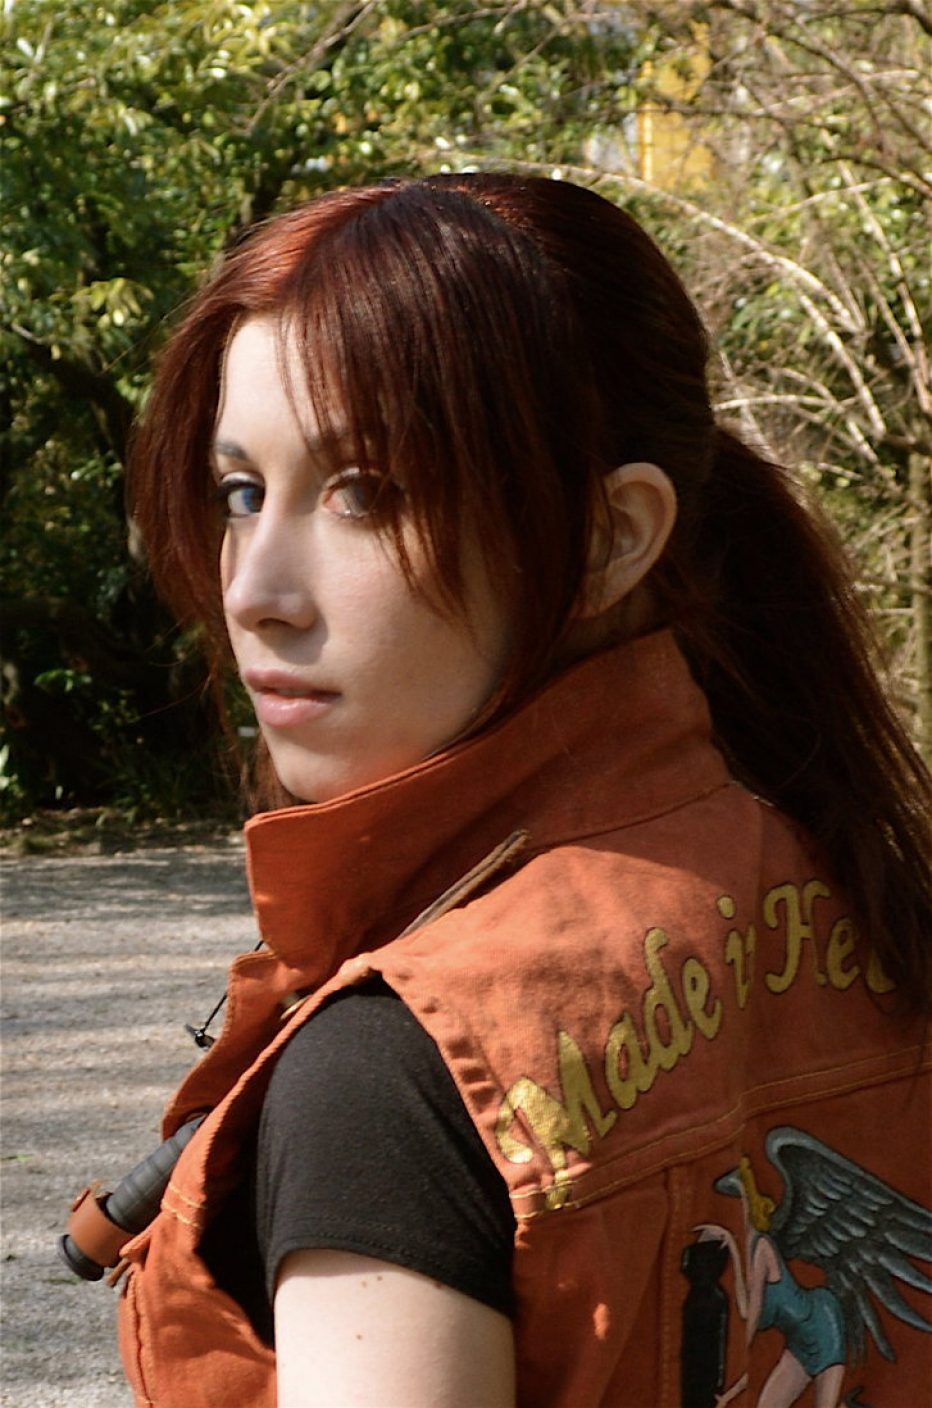 Resident-Evil-2-Claire-Redfield-Cosplay-Gamers-Heroes-6.jpg